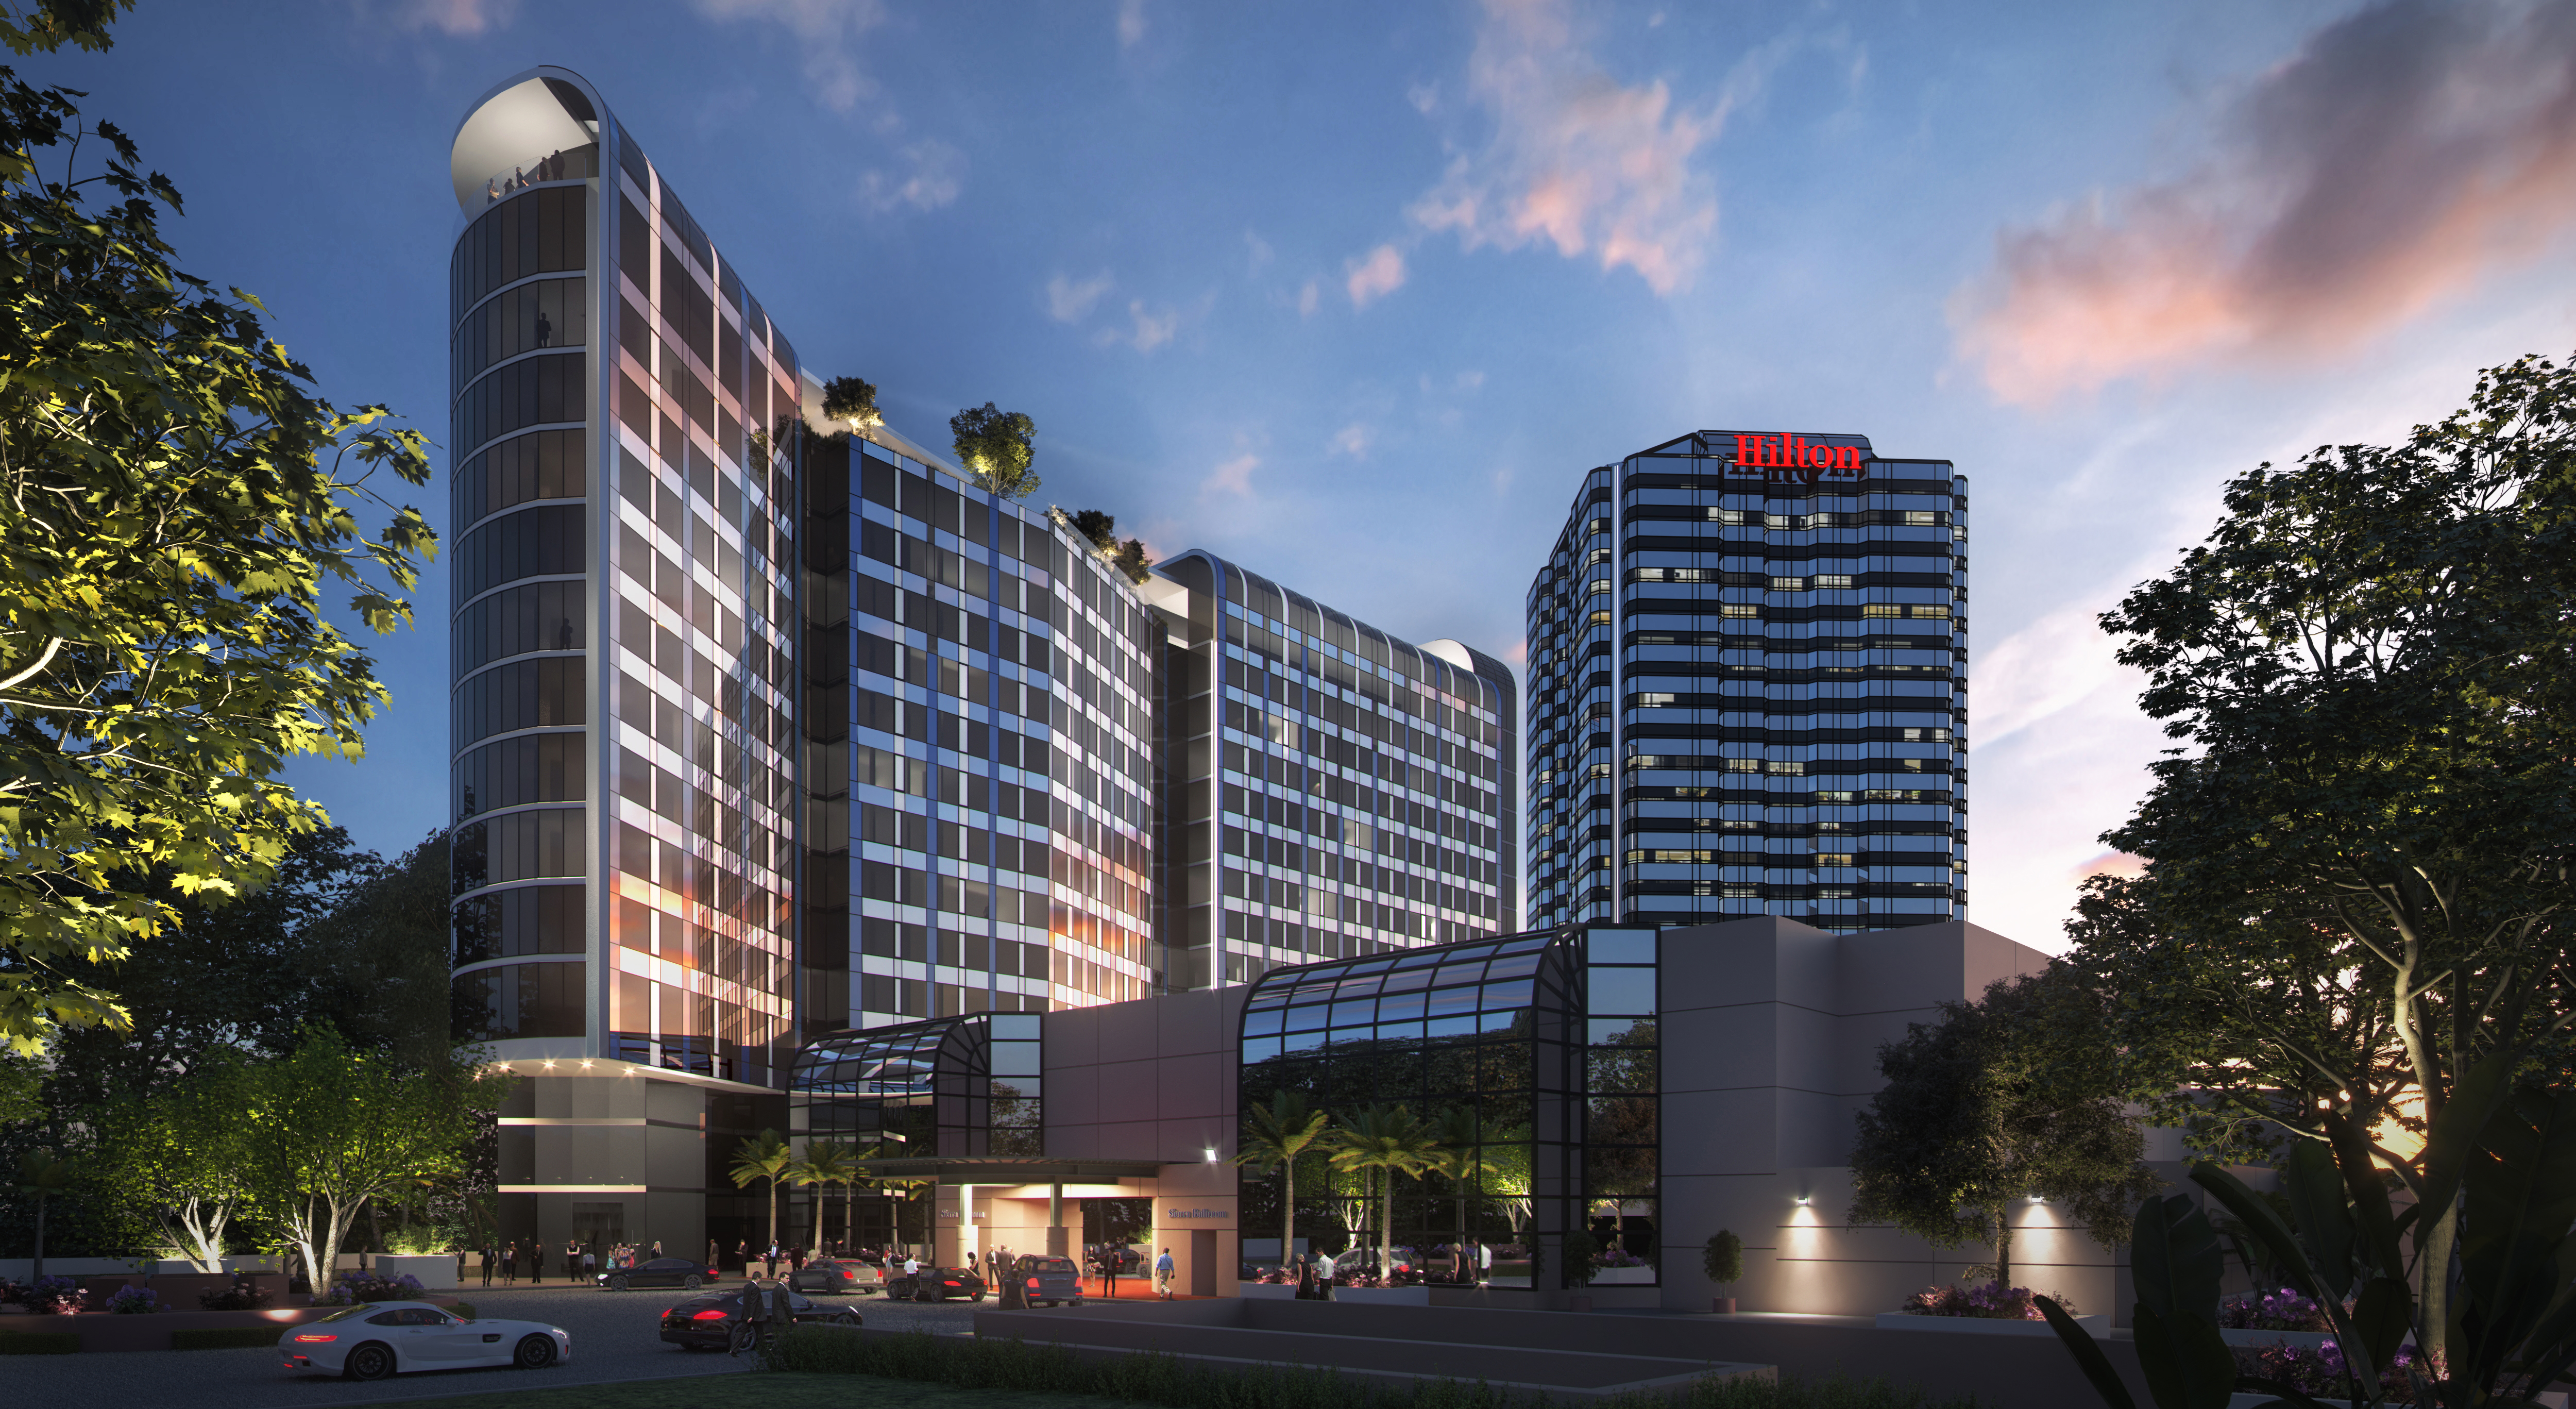 Rendering of new Universal Hilton tower